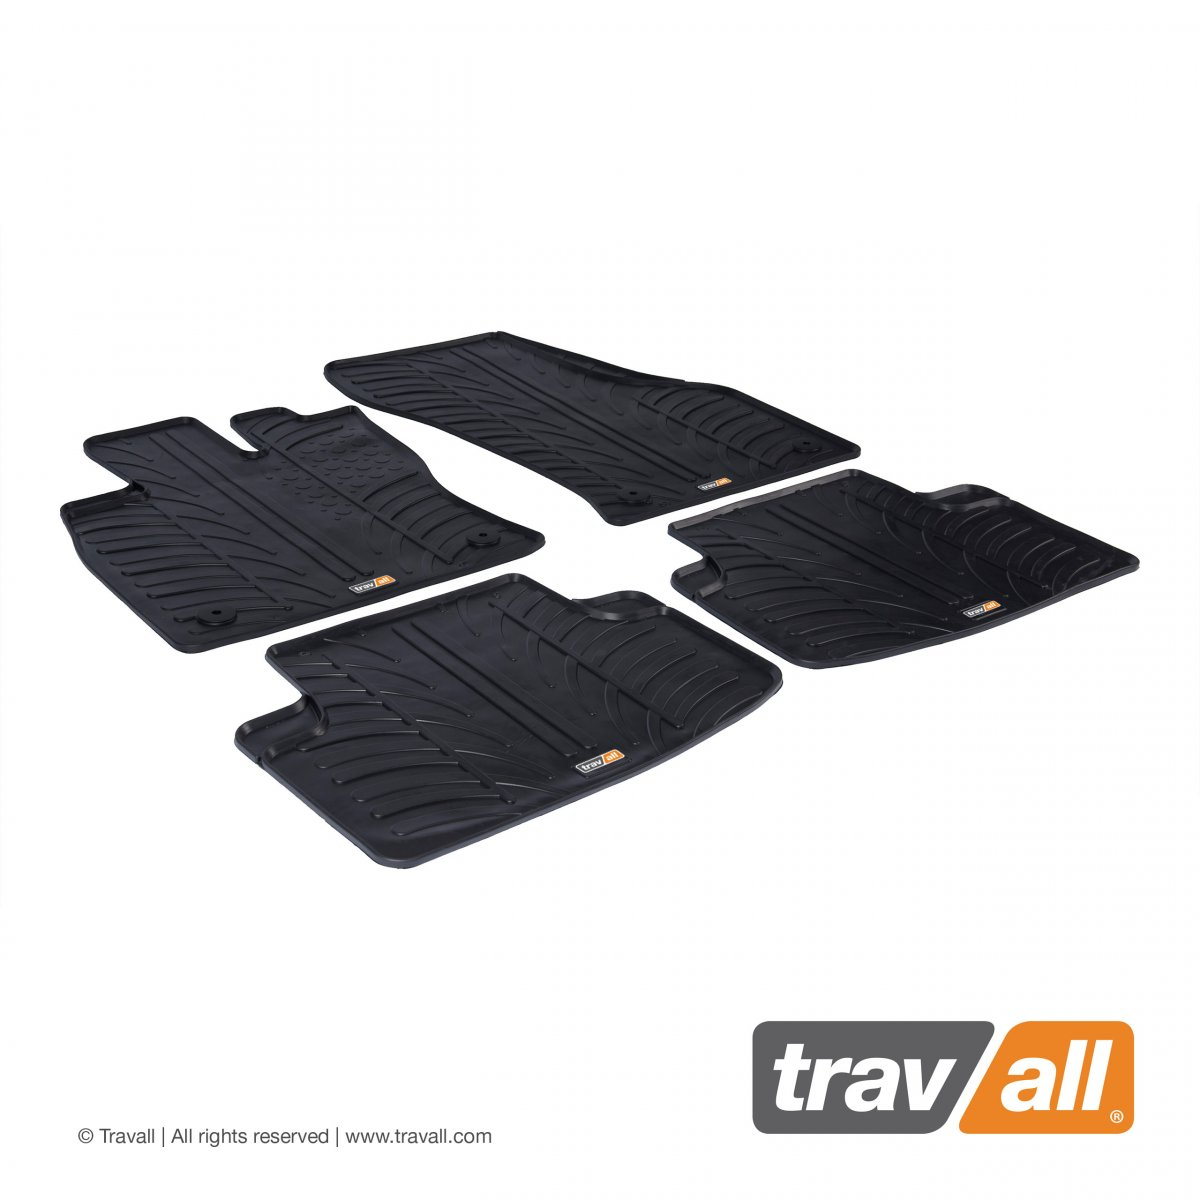 Travall® MATS for Audi A3/S3 Saloon/A3 Sportback e-tron/S3 Sportback (2013 >) / A3 Sportback (2012 >) / RS3 Sportback (2015-2016) / Volkswagen Golf SV (2014 >)